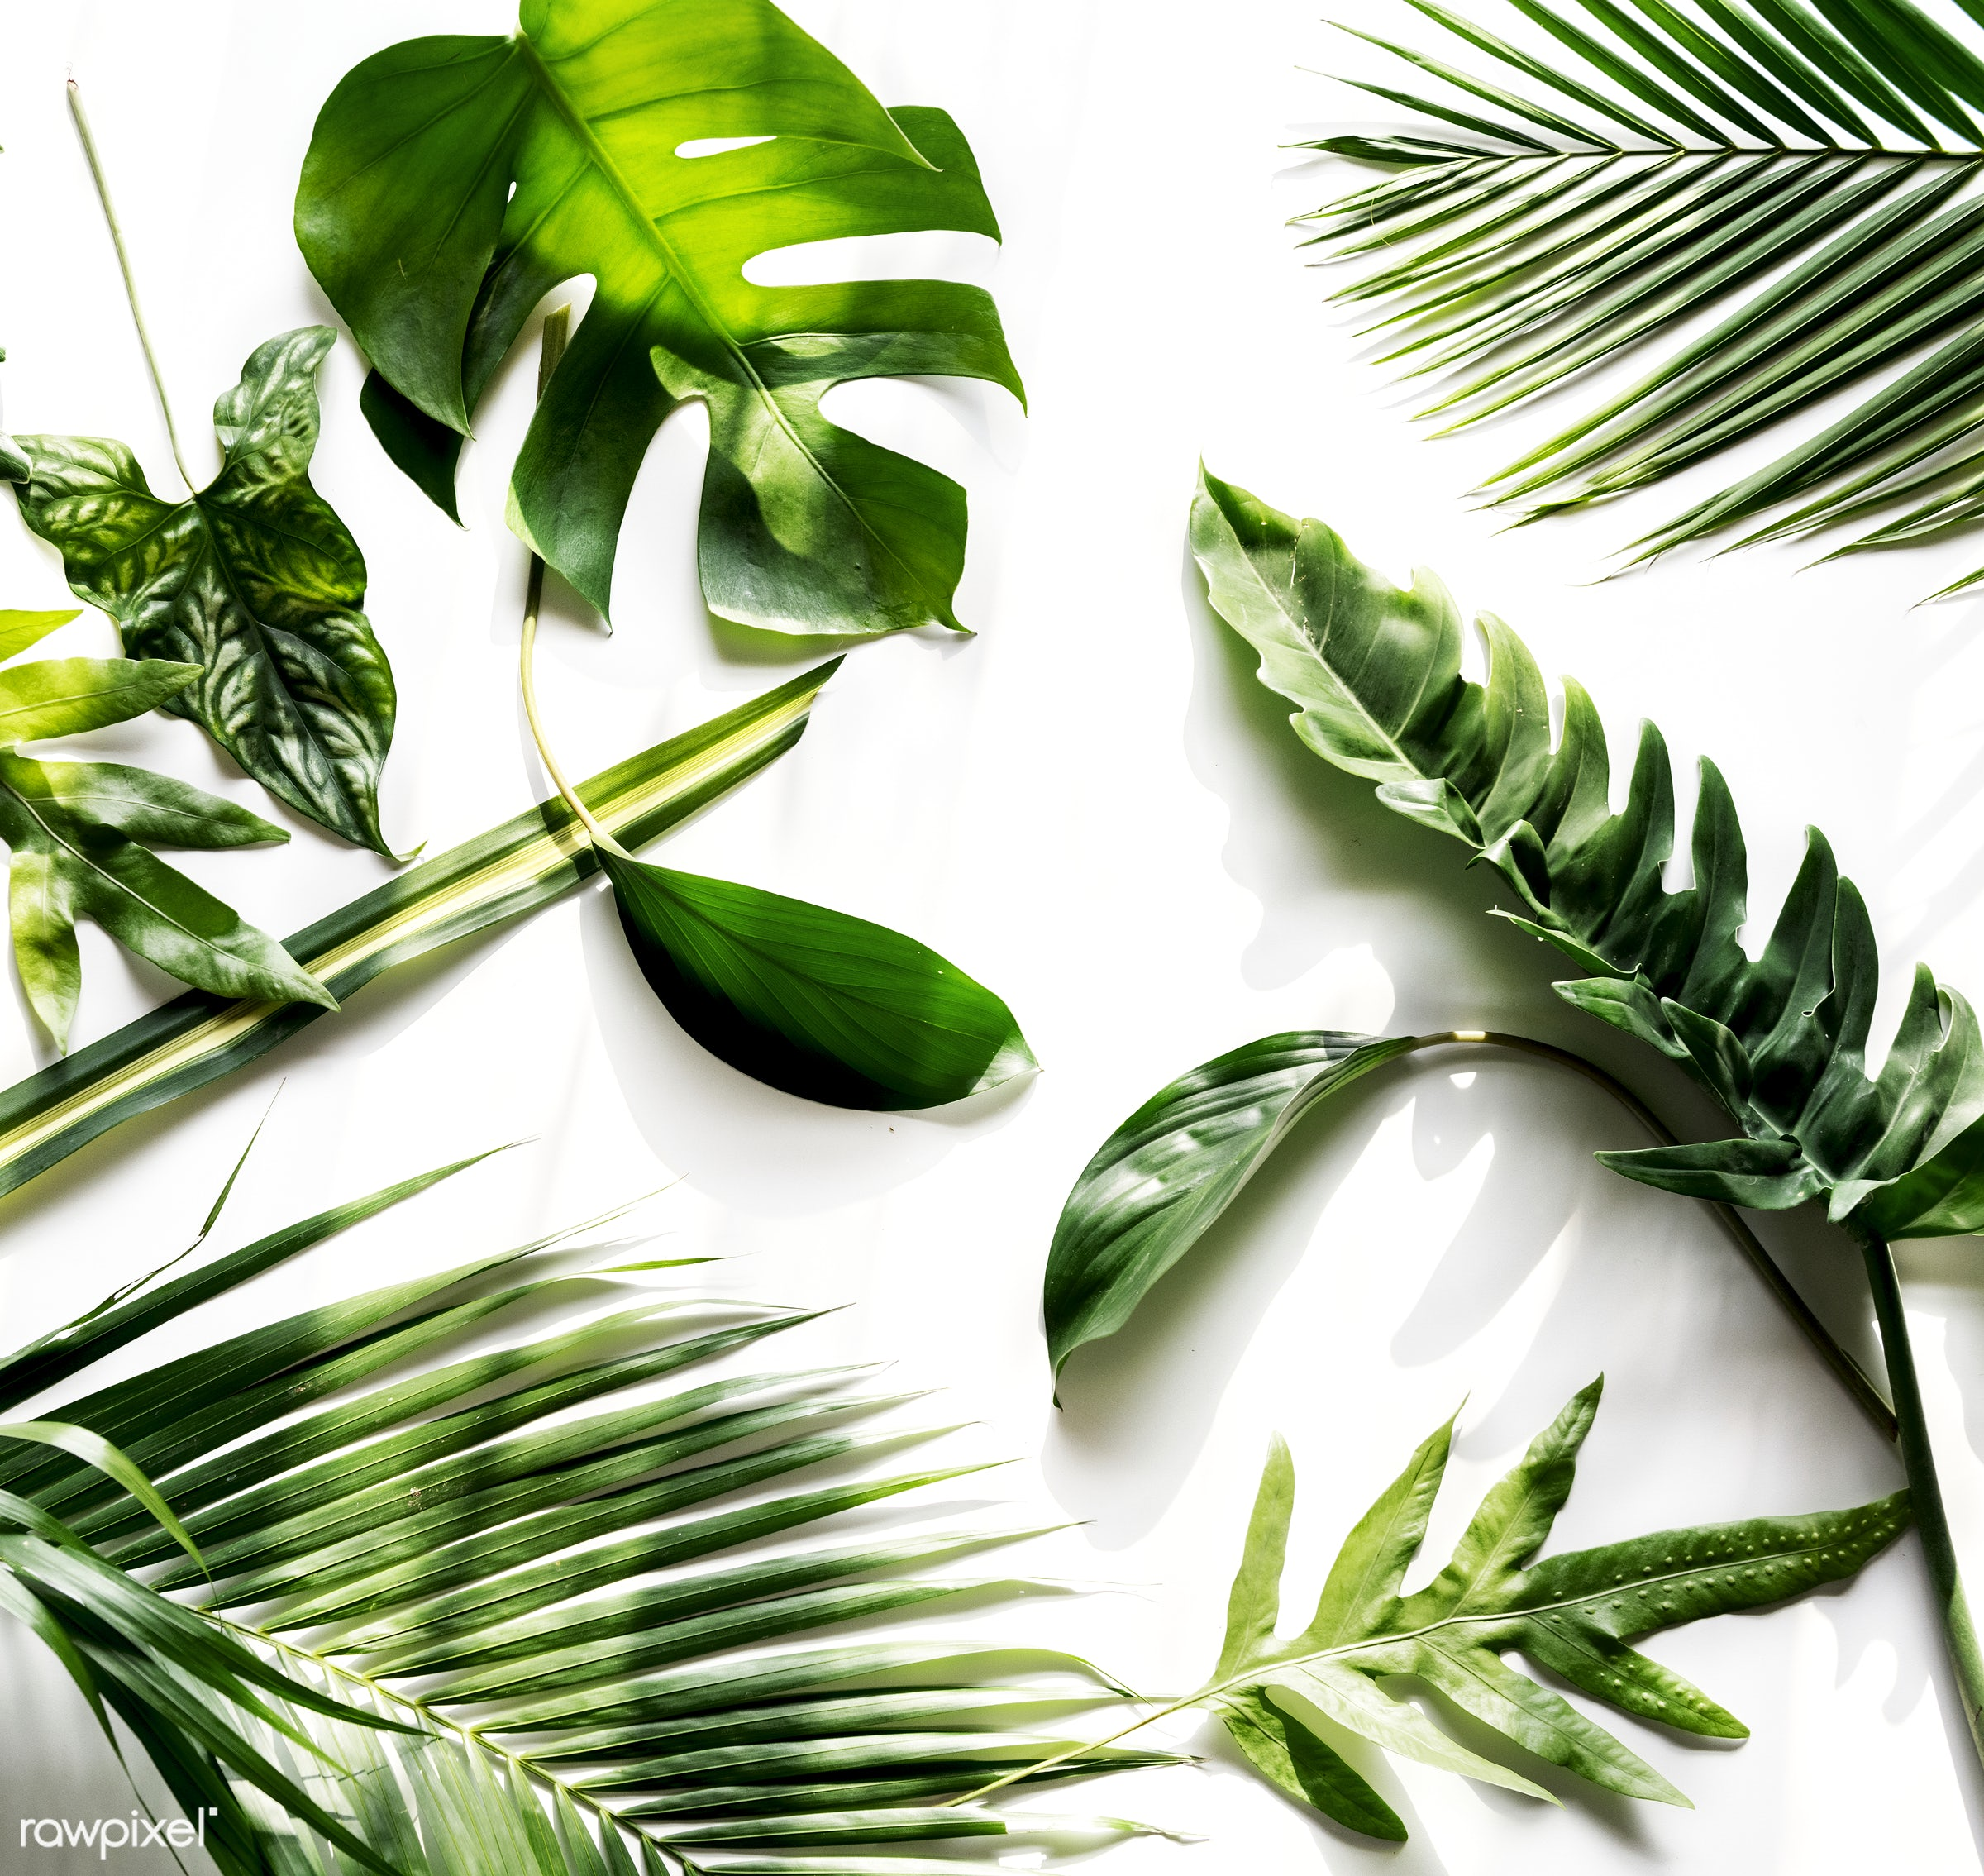 Tropical green leaves on white background - plant, concept, decorative, botany, isolated on white, leaf, leaves, botanical,...